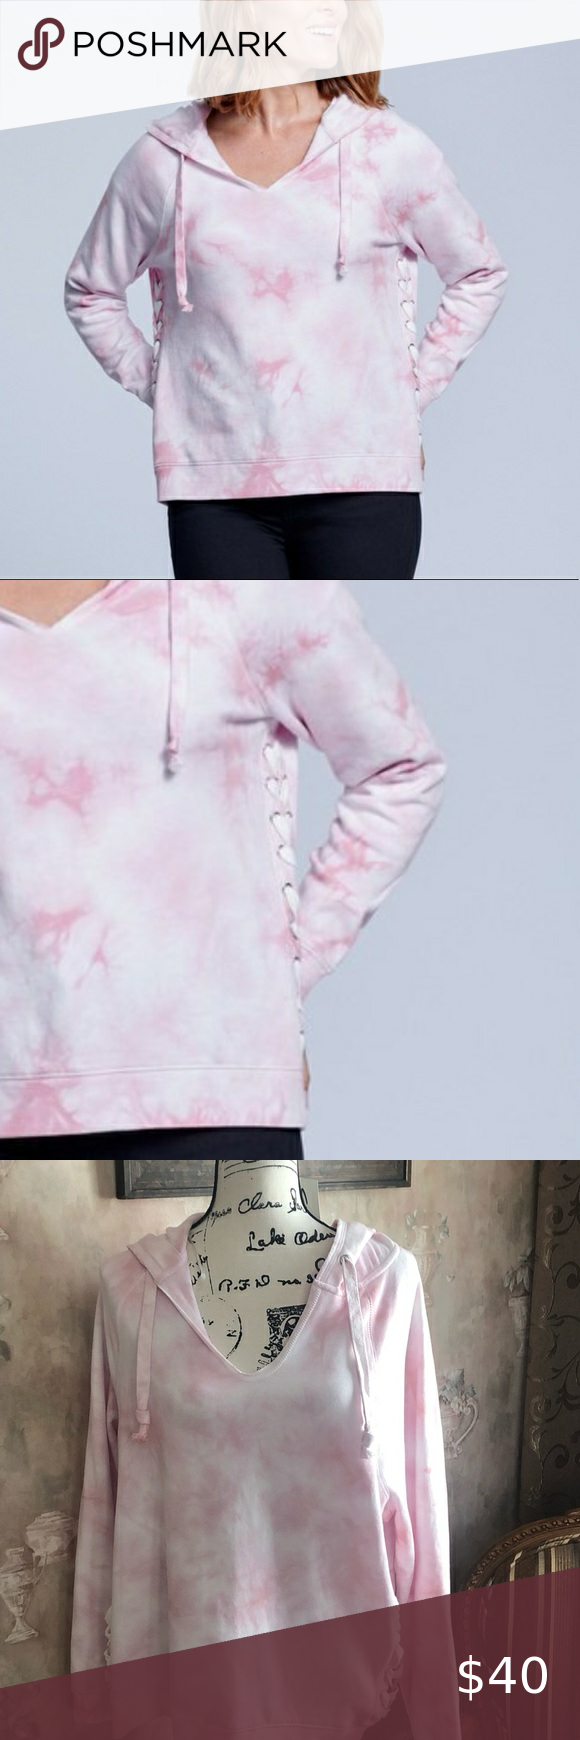 Seven 7 Pink Tiedye Lace Up Hoodie Nwt New With Tags Seven Lace Up Tiedye Hoodie Cotton Poly Dolman Sleeve Side Lace Up Clothes Design Fashion Plus Fashion [ 1740 x 580 Pixel ]